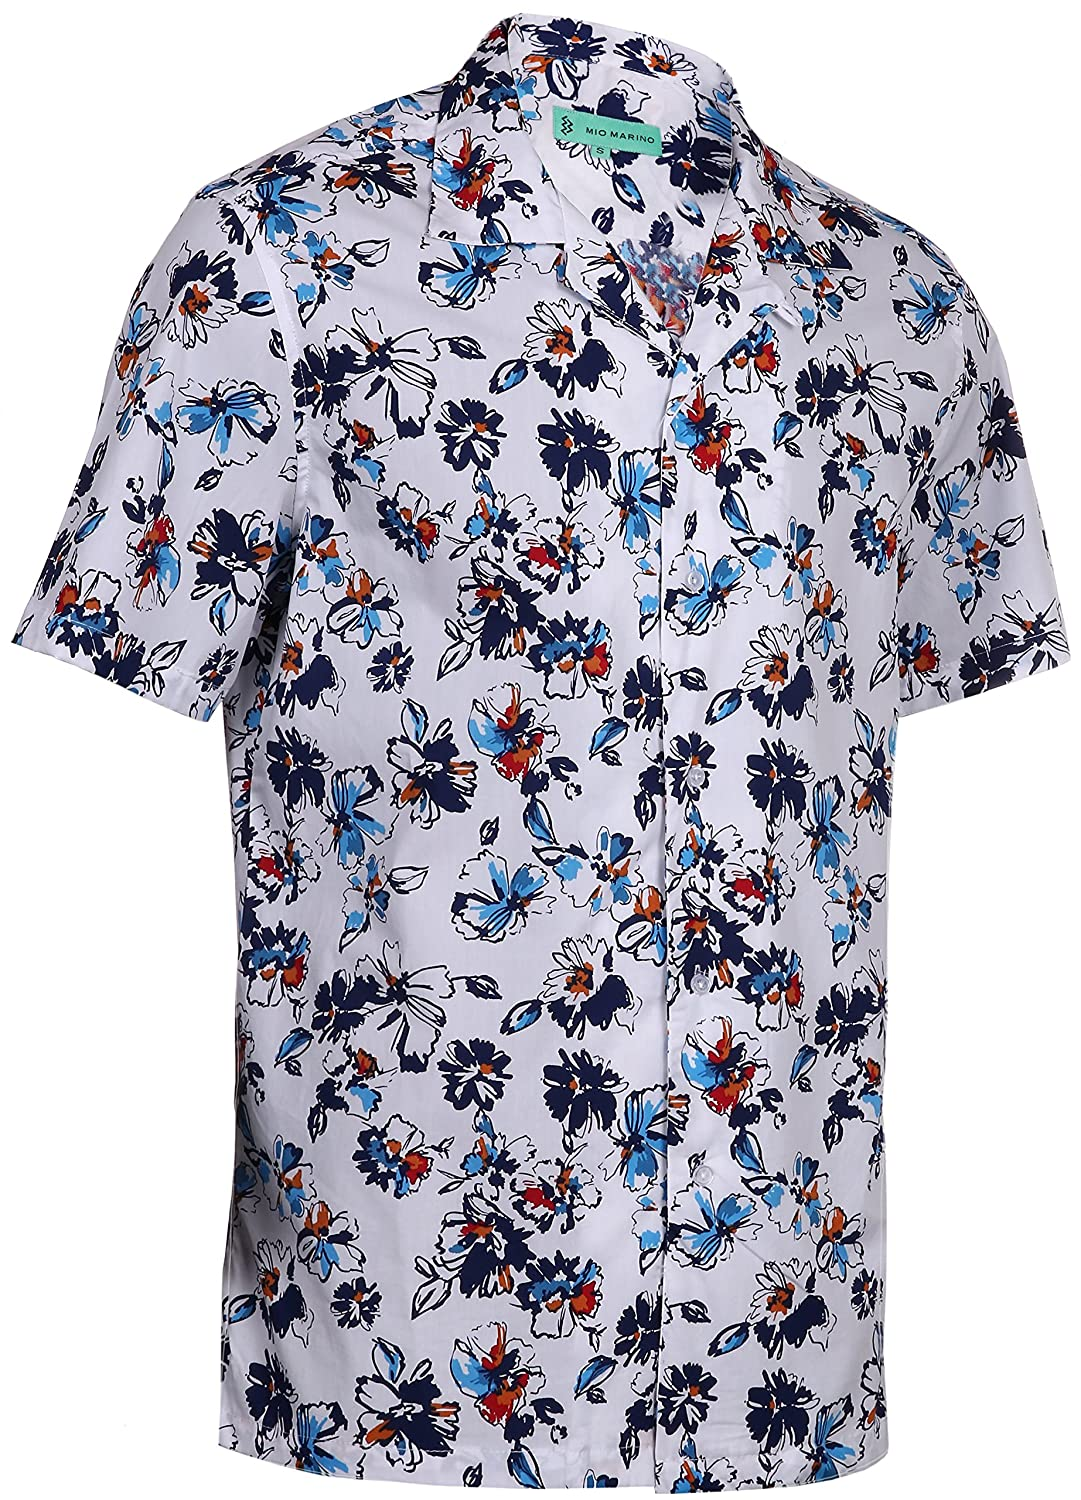 1c9cdf781 Mio Marino Mens Hawaiian Shirt - Funky Floral Shirt for Men - Short Sleeve Aloha  Shirt at Amazon Men's Clothing store: